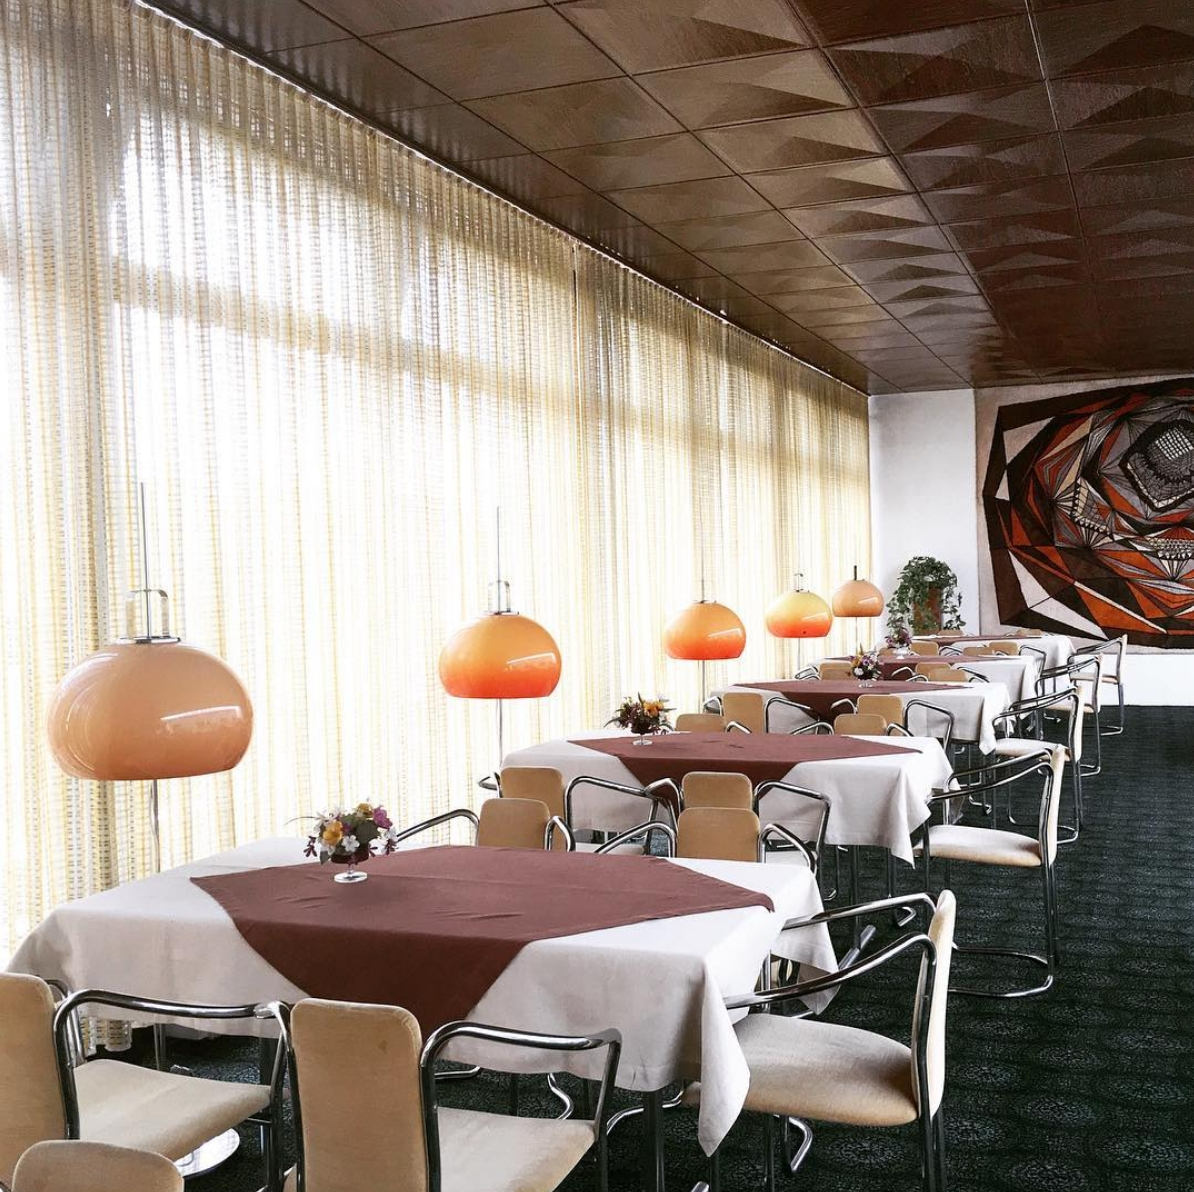 Hotel love! #diningroom #productdesign #vintagelove #architecture #interiordesign #Parkhotel1970 #interior #70s